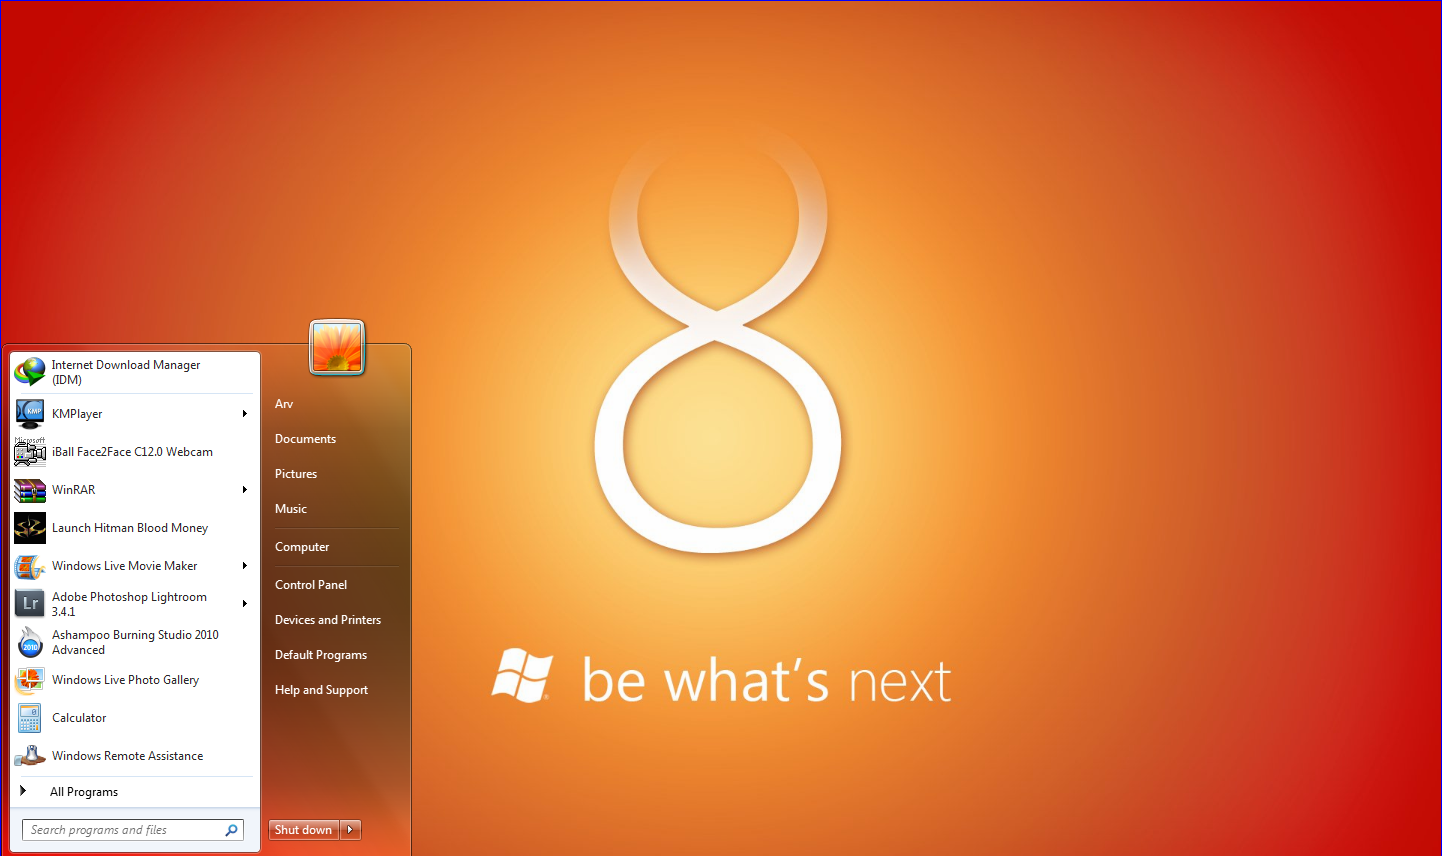 Download Windows Next Themepack For Windows 7 By Inferse. Colleges Known For Criminal Justice. World Merchant Services Construction Leads Ny. Buy Salvage Cars Direct From Insurance Companies. Lower Abdominal Pain Male Piazza Navona Hotel. Domain Name With Google Zebra Print Server Ii. Adt Security Mobile Al Roof Repair New Jersey. Carolina Springs Middle School. Invisalign Express Before And After Photos